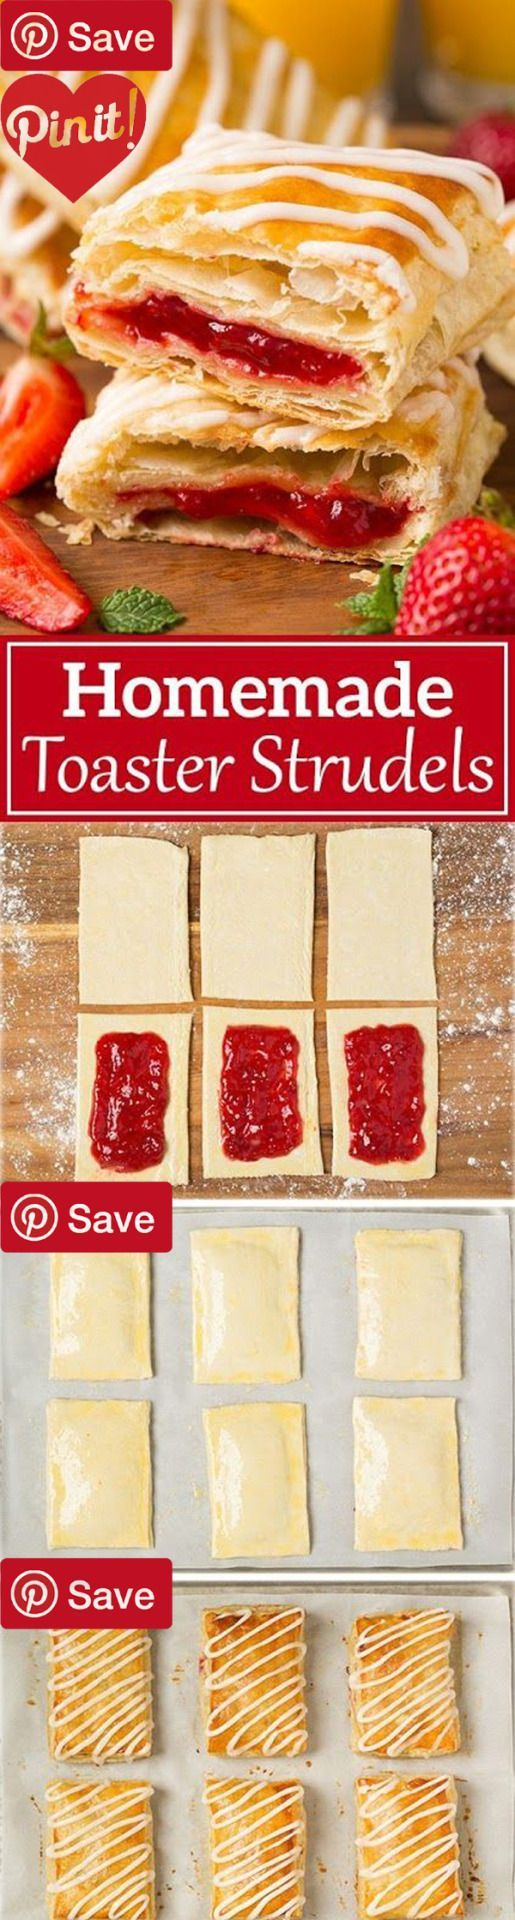 Homemade Toaster Strudels #delicious #diy #Easy #food #love #recipe #recipes #tutorial #yummy @Mommas Kitchen - Make sure to follow cause we post alot of food recipes and DIY we post Food and drinks gifts animals and pets and sometimes art and of course Diy and crafts films music garden hair and beauty and make up health and fitness and yes we do post womens fashion sometimes and even wedding ideas travel and sport science and nature products and photography outdoors and indoors mens…